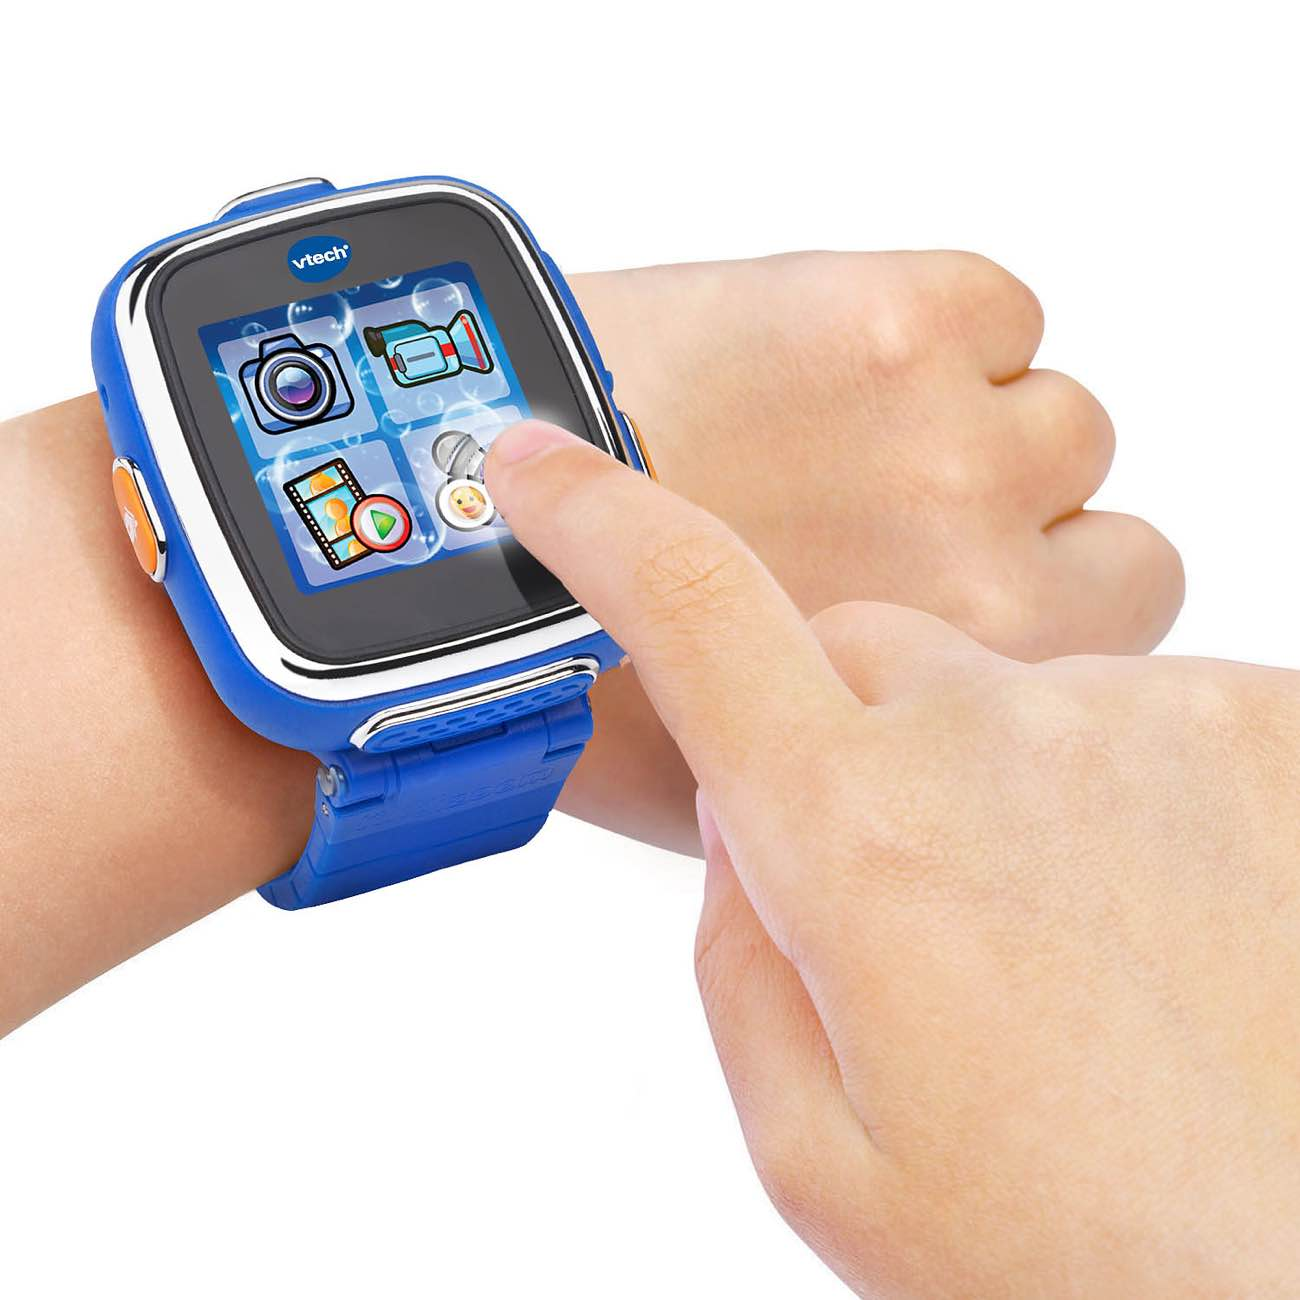 Wecker Für Kinder Vtech Kidizoom Smart Watch 2 - Smartwatch.de